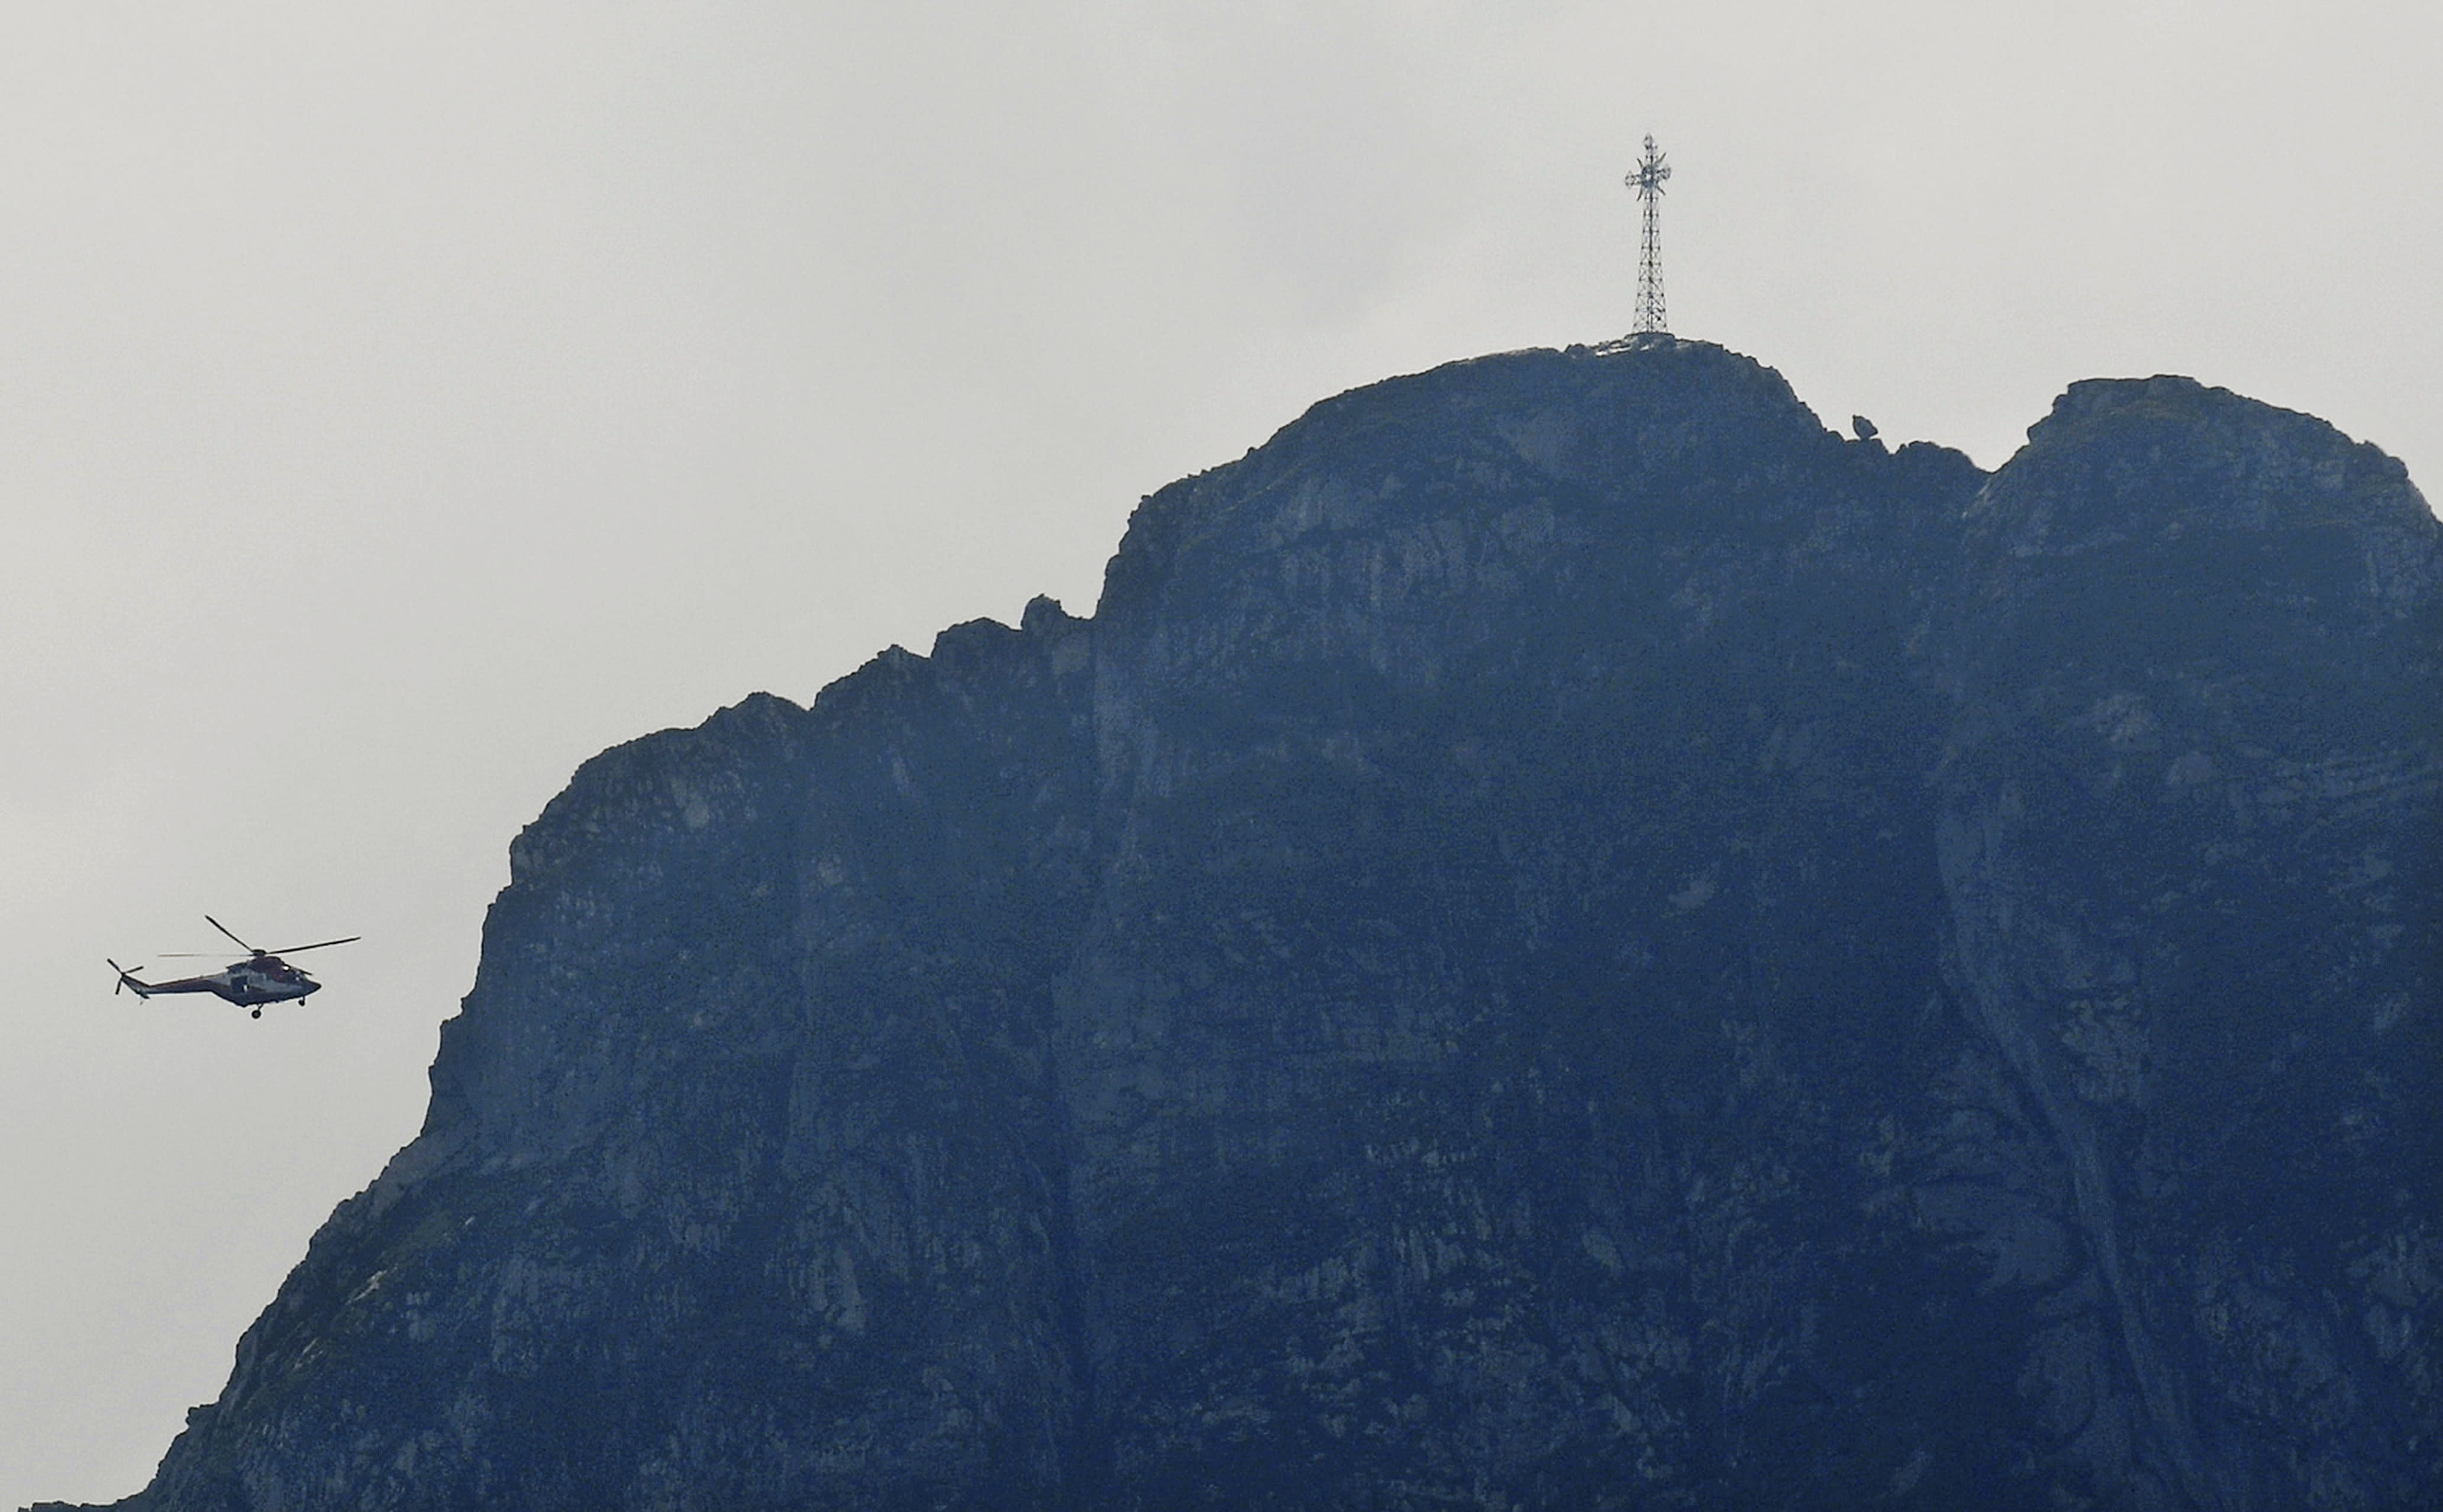 Rescuers in a helicopter checking the slopes of the Giewont peak for missing persons and anyone who might need help in the Tatra Mountains in Poland, Friday, Aug. 23, 2019. Three people are still missing in southern Poland after a deadly thunderstorm with multiple lightning strikes hit the Tatra Mountains, killing five people and injuring over 150. (AP Photo/Bartlomiej Jurecki)